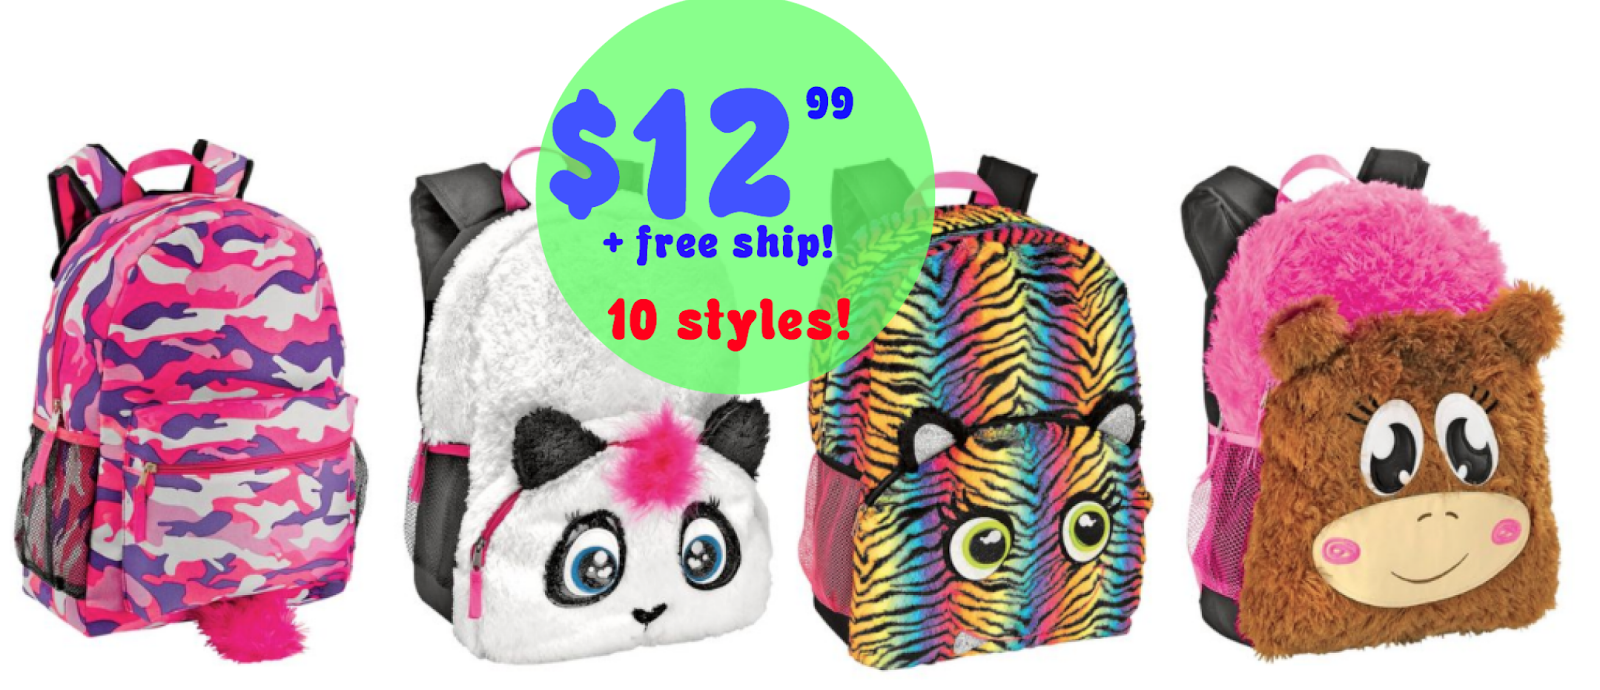 Shopko:  Critter Backpacks = $12.99 + FREE Shipping!  50% off Messenger Bags, Lunch Bags & Backpacks!  Regularly $25.99!